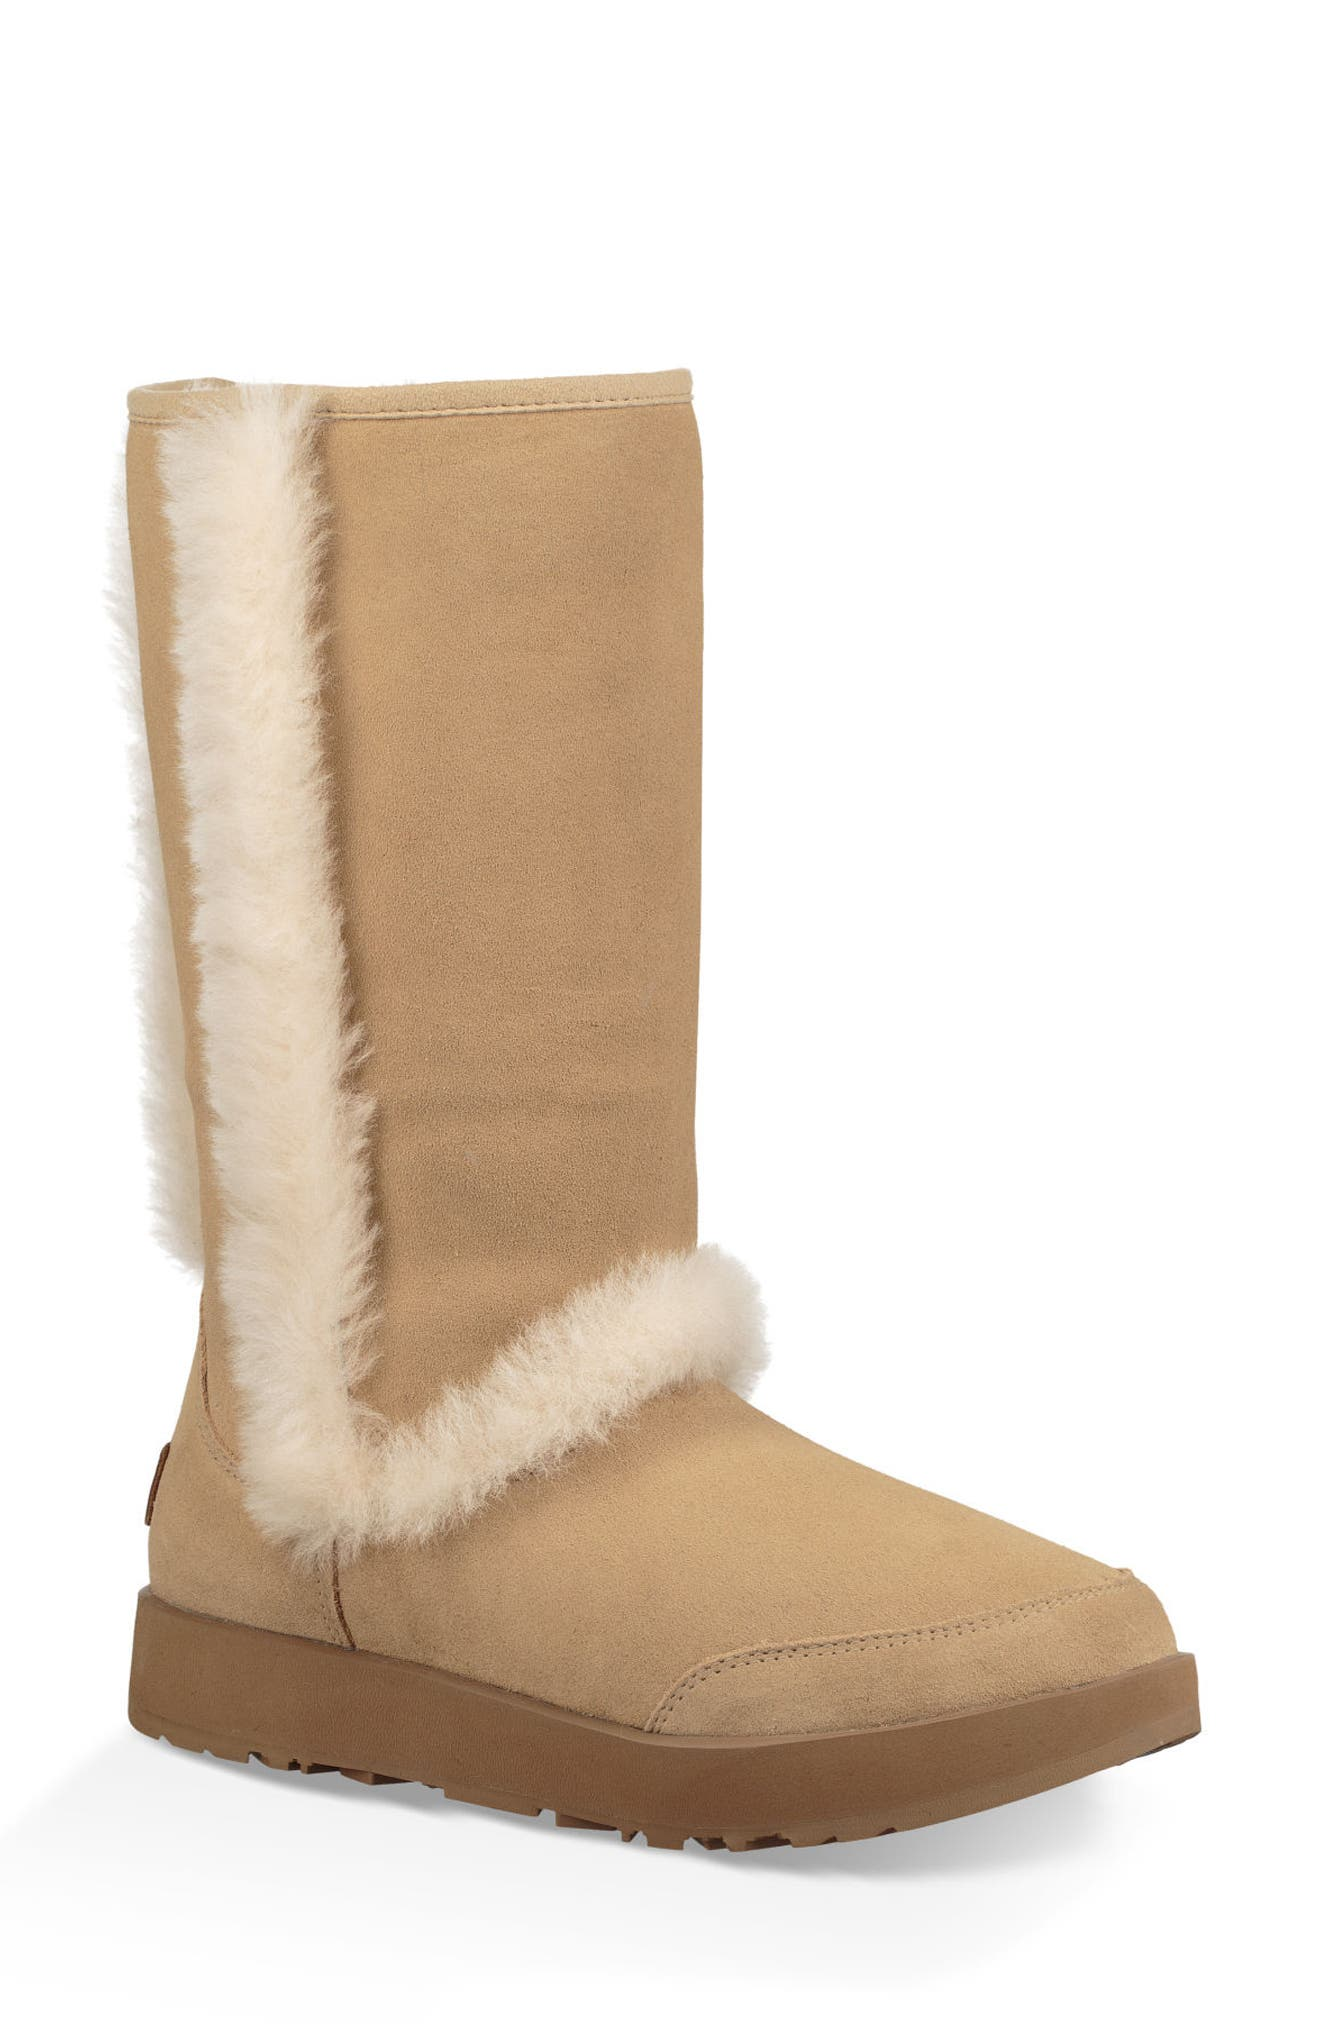 Sundance Genuine Shearling Waterproof Boot,                             Main thumbnail 1, color,                             Sand Suede